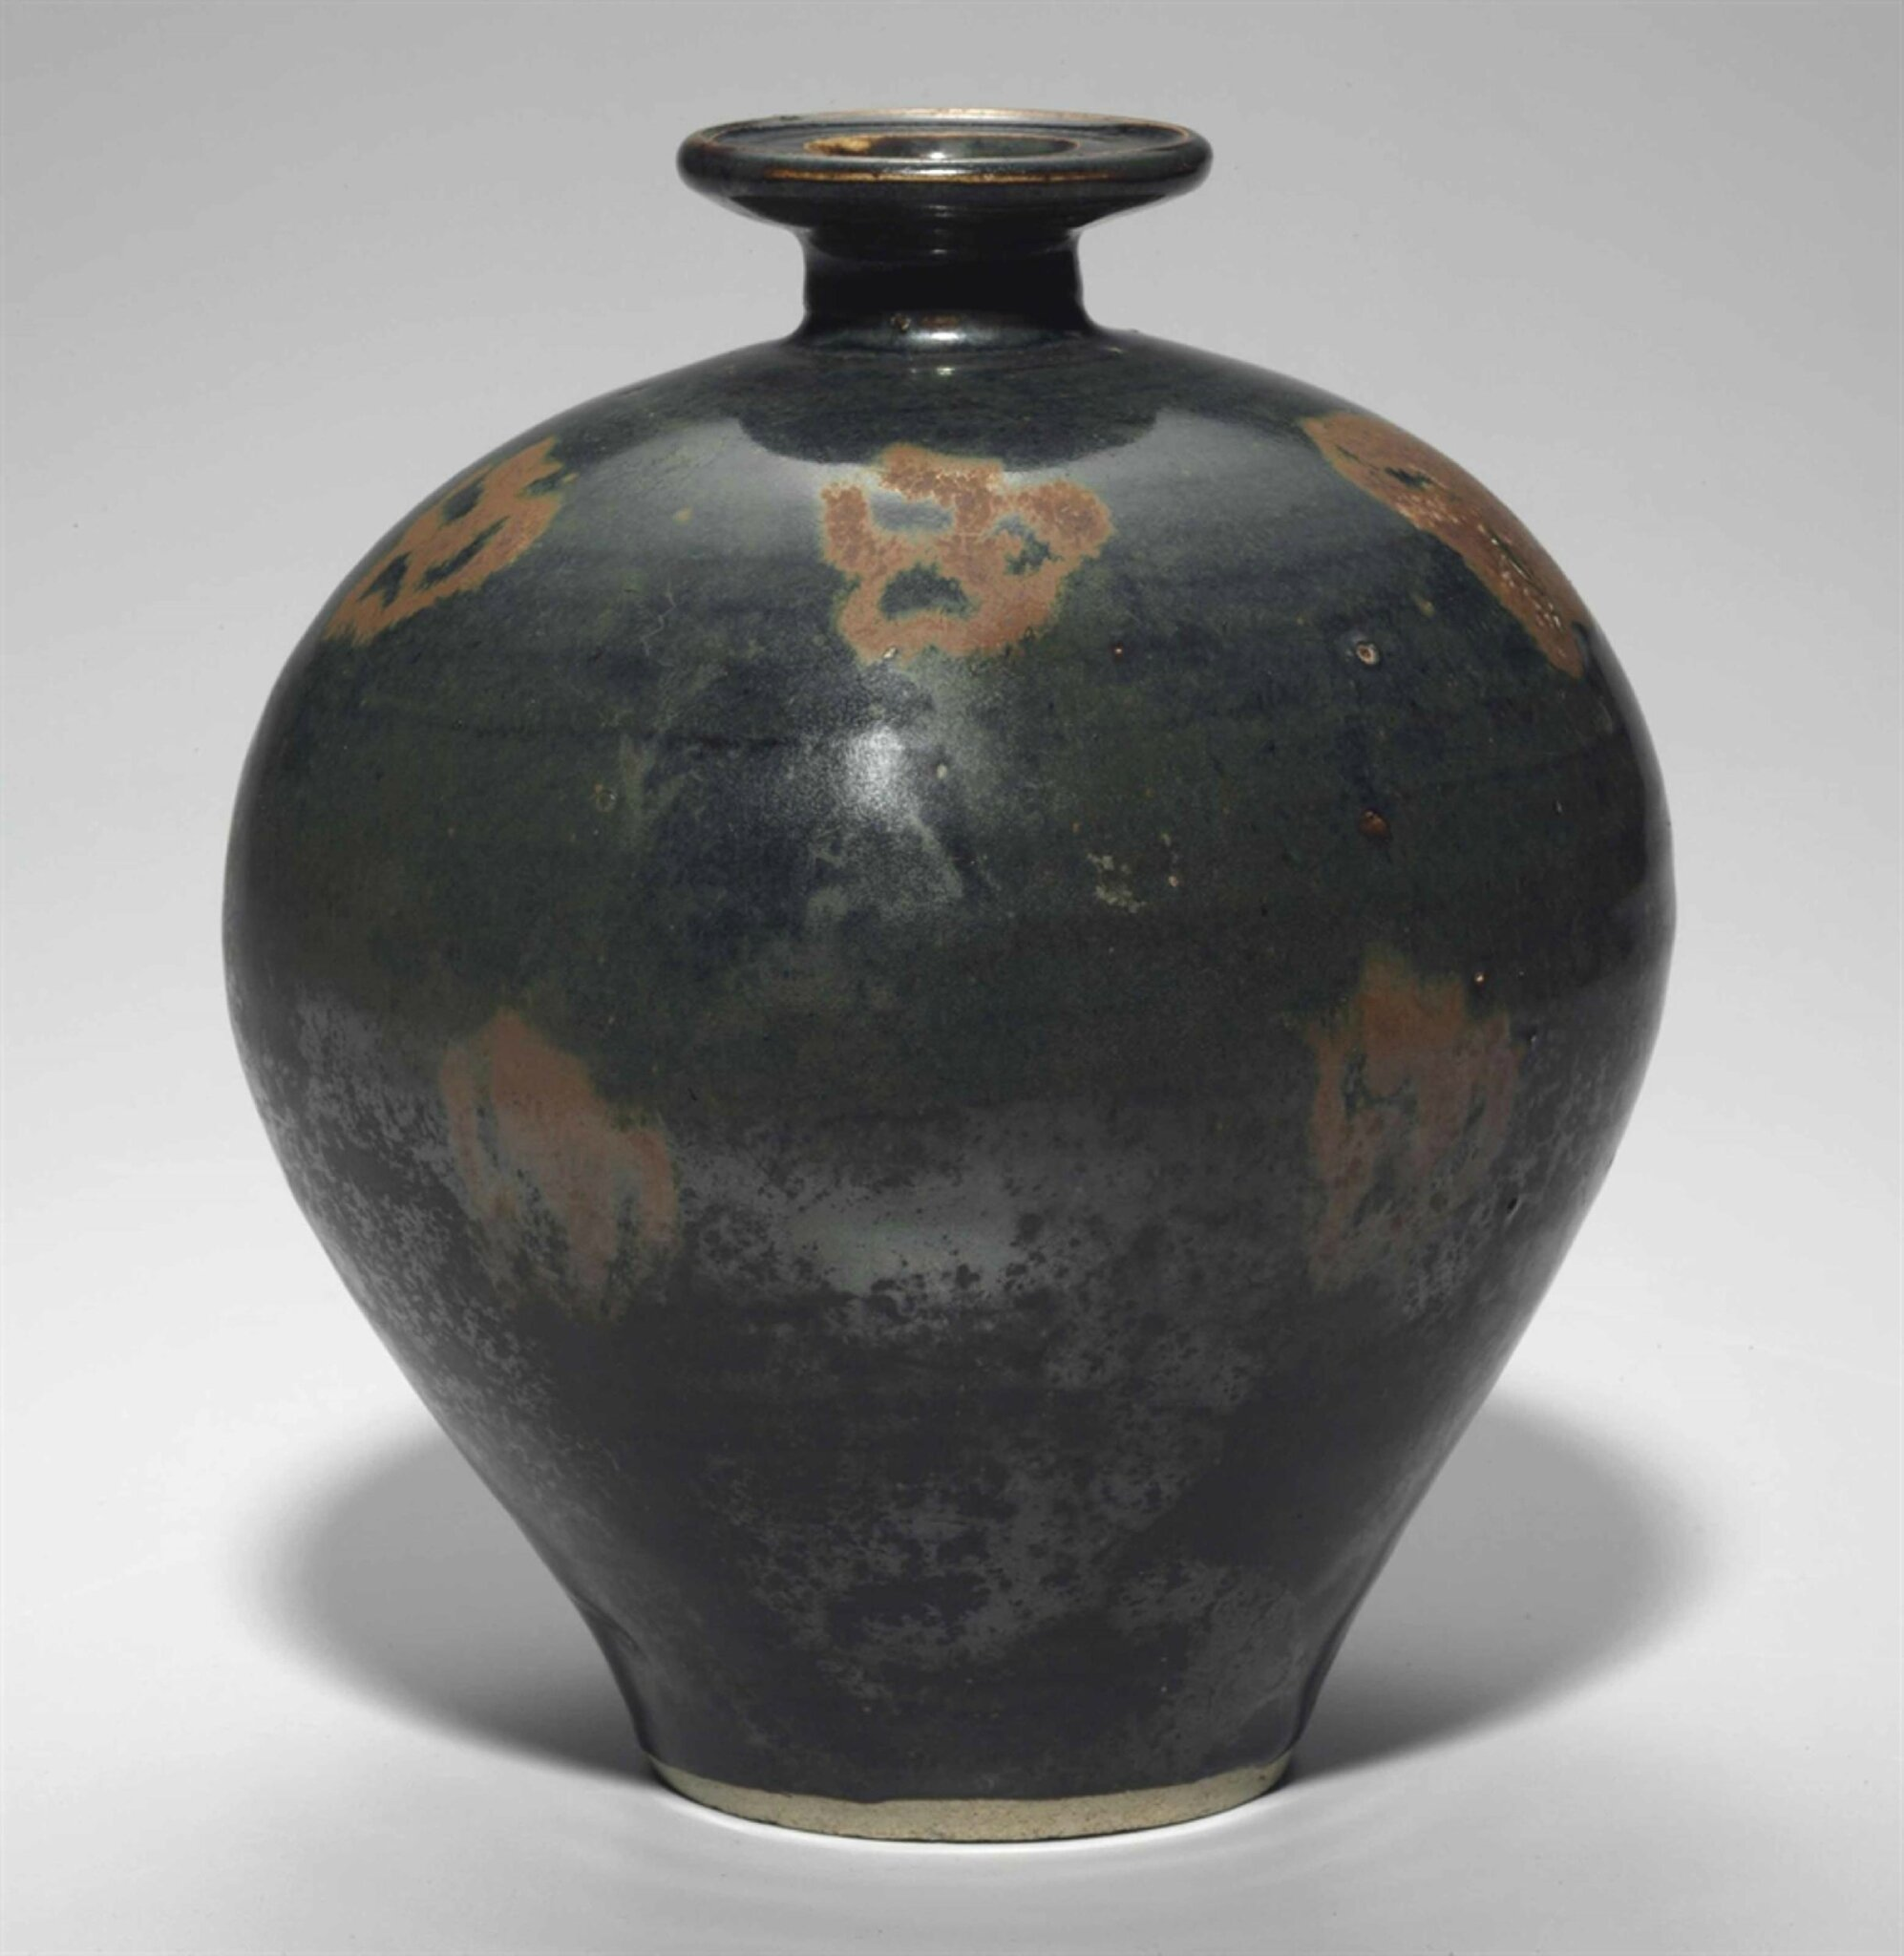 A rare russet-decorated blackish-brown-glazed jar, Northern Song dynasty, 11th-12th century